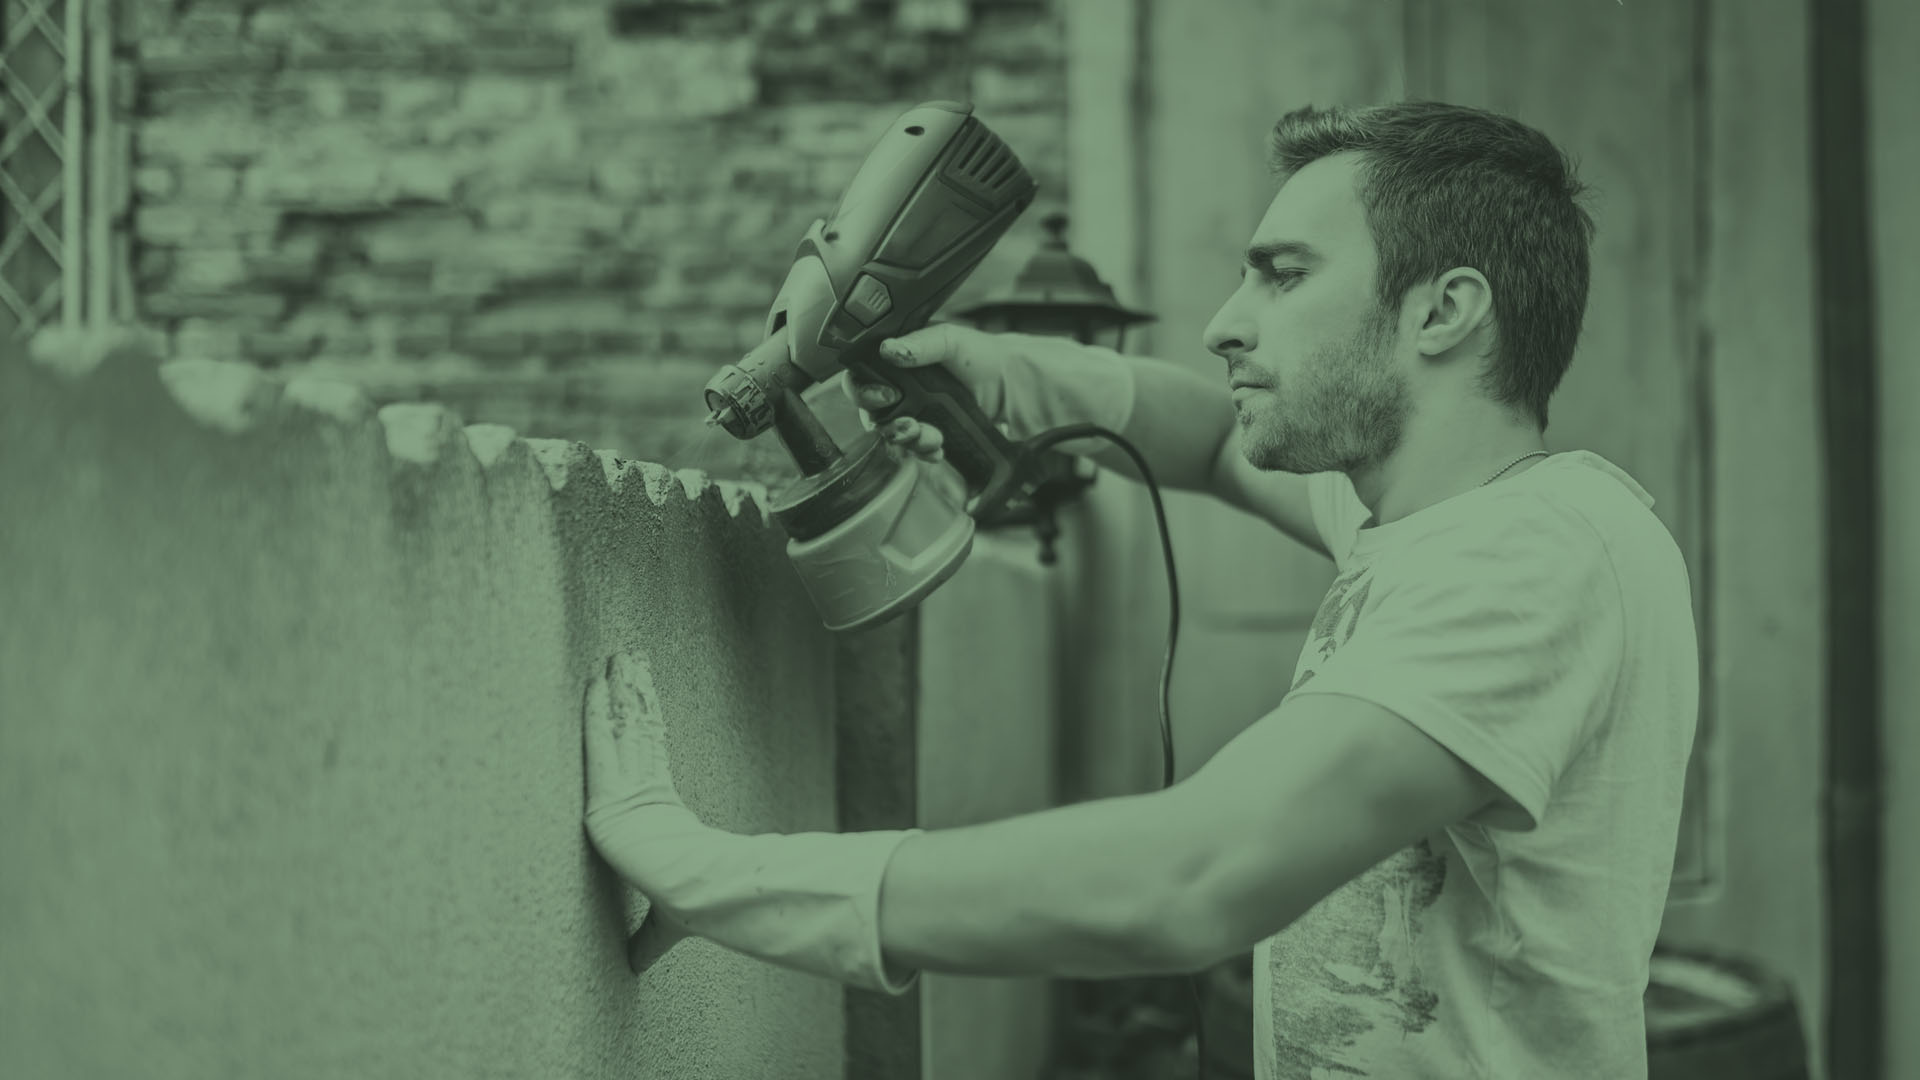 Ready To Save Time And Hassle On Your Home Projects?